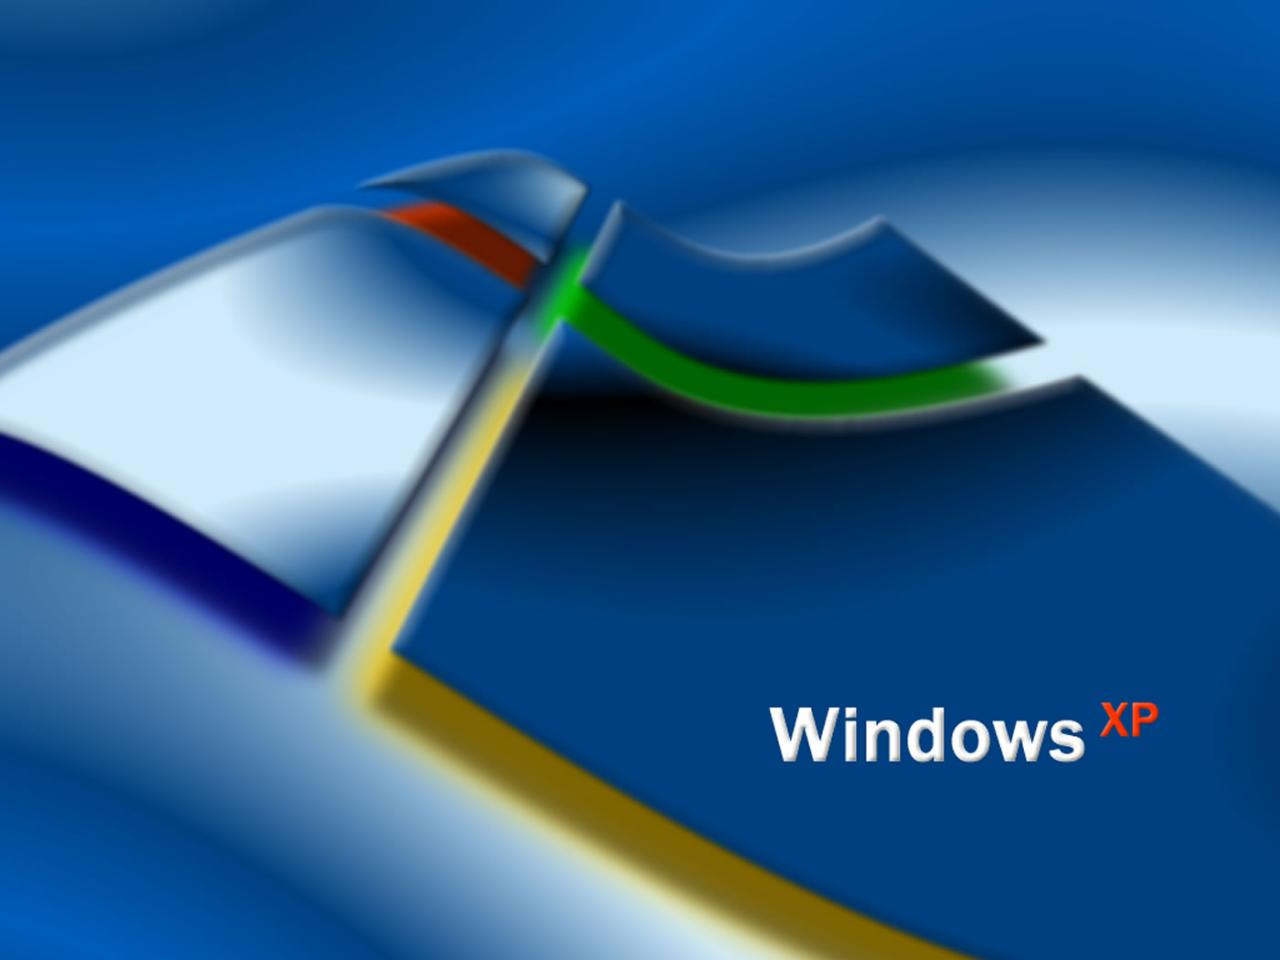 XP Wallpapers Themes